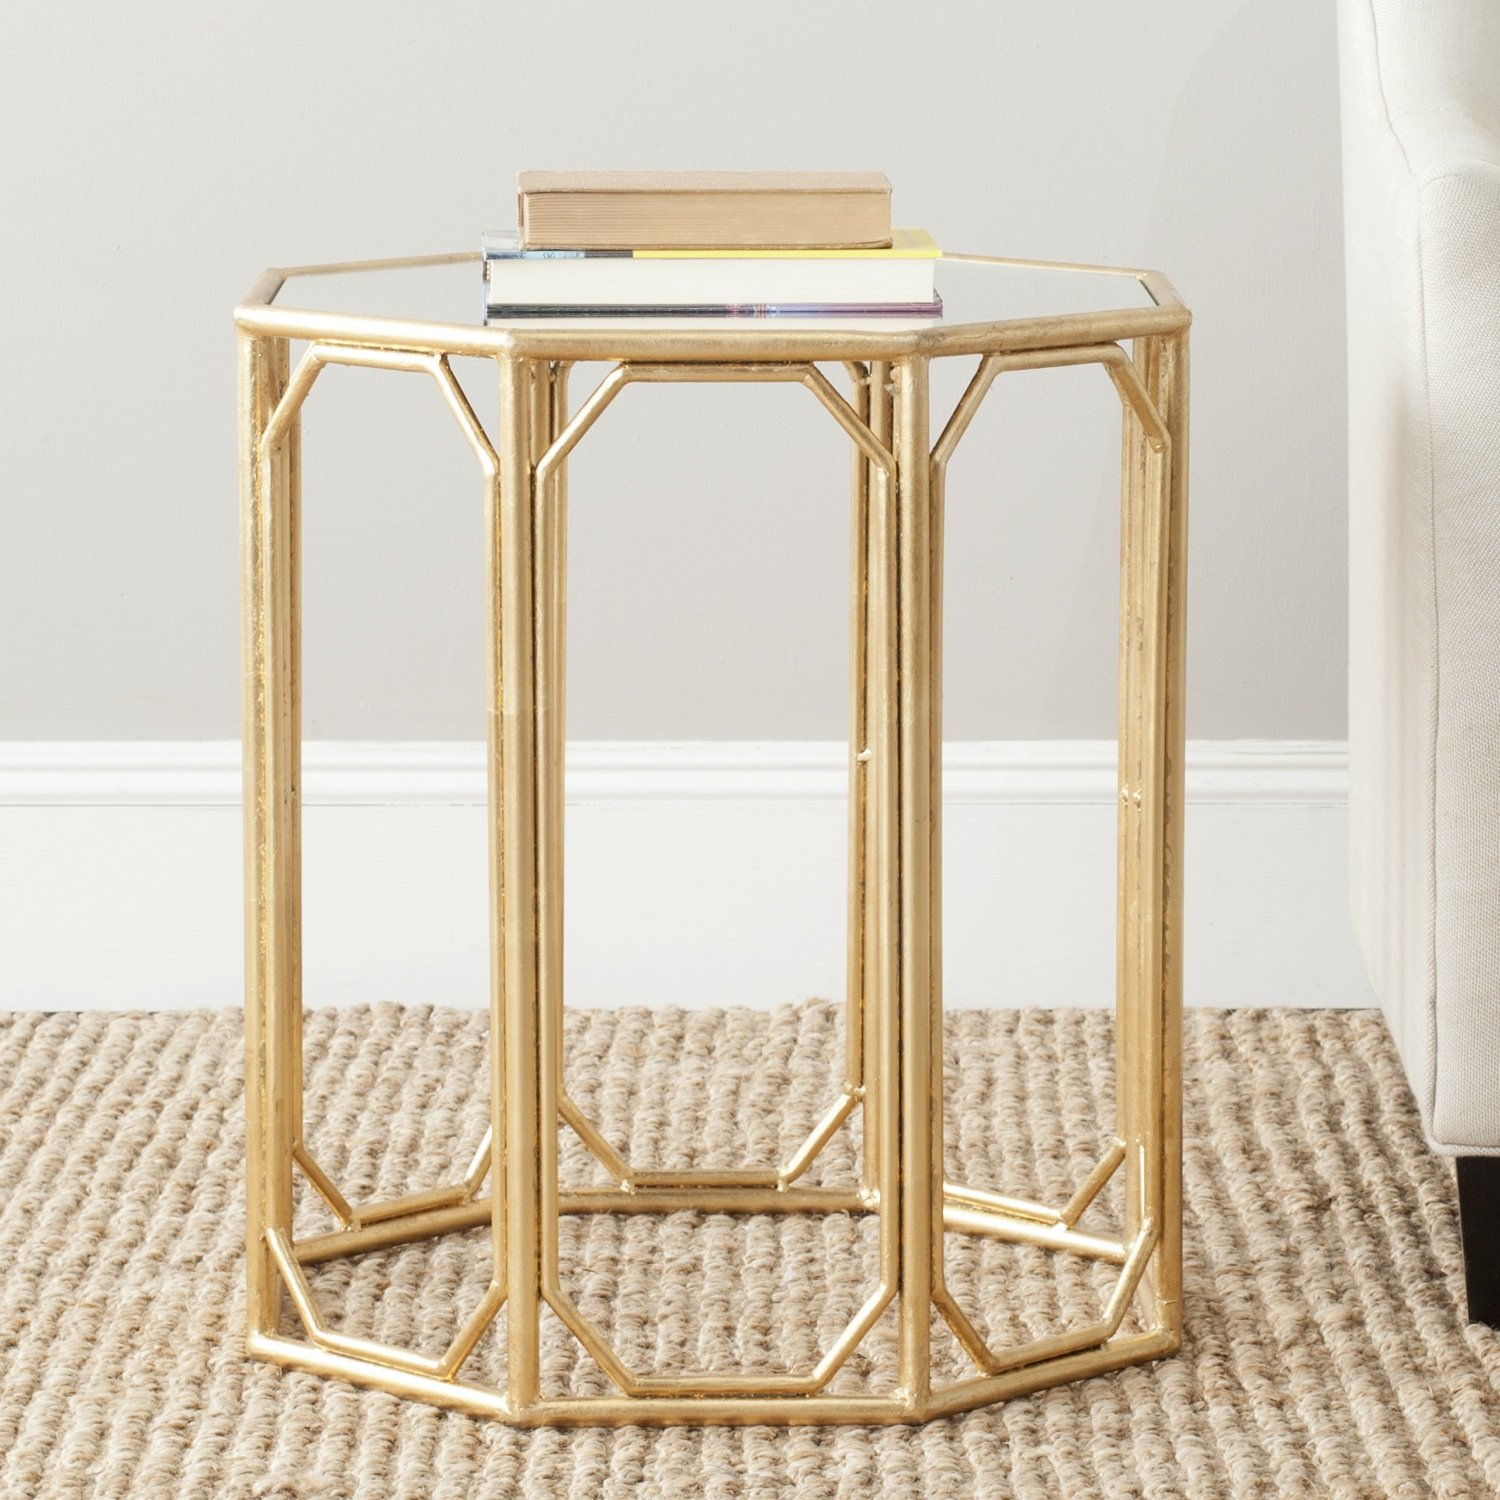 safavieh home collection muriel gold accent table kitchen dining wall decor ideas bedroom night stands antique round pedestal collapsible coffee ikea drum throne tall occasional